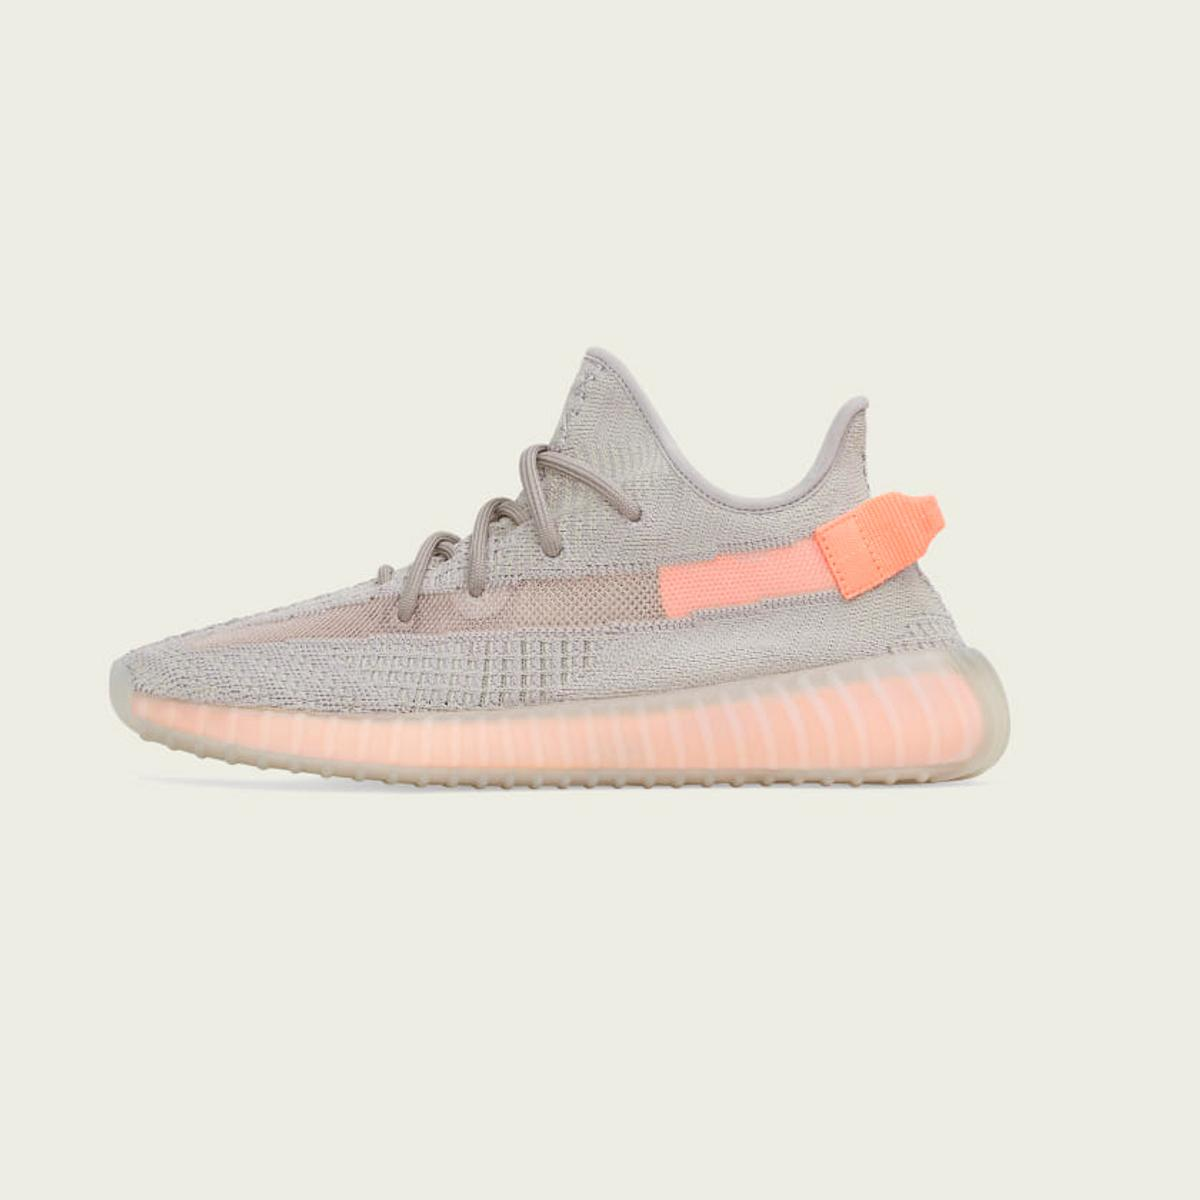 a63a55a1d Adidas Yeezy Boost 350 V2 TRFRM UK 13 in LE1 Leicester for £280.00 ...